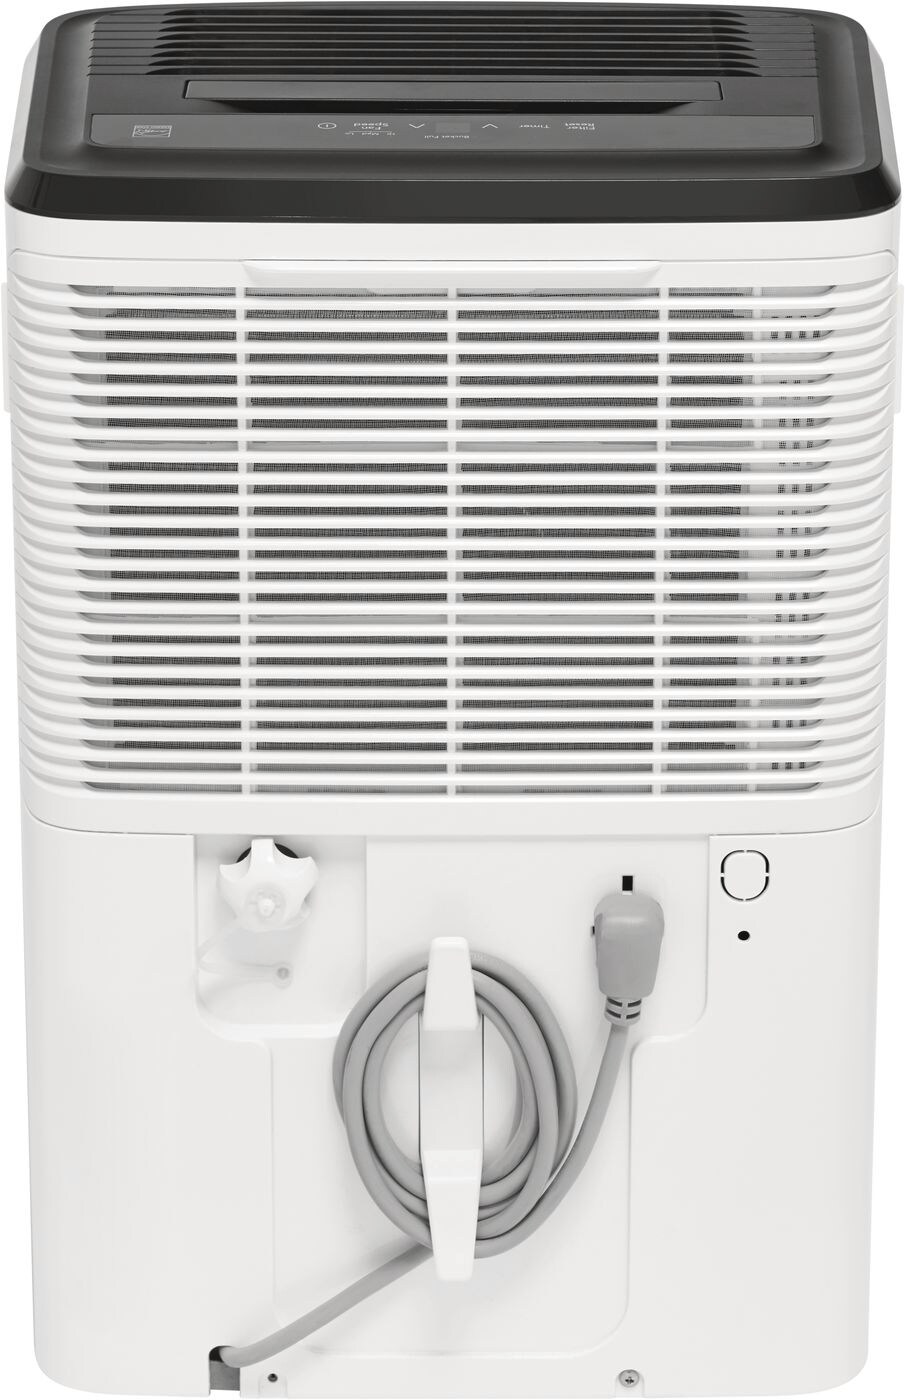 Model: FFAD3533W1 | Frigidaire Moderate Humidity 35 Pint Capacity Dehumidifier